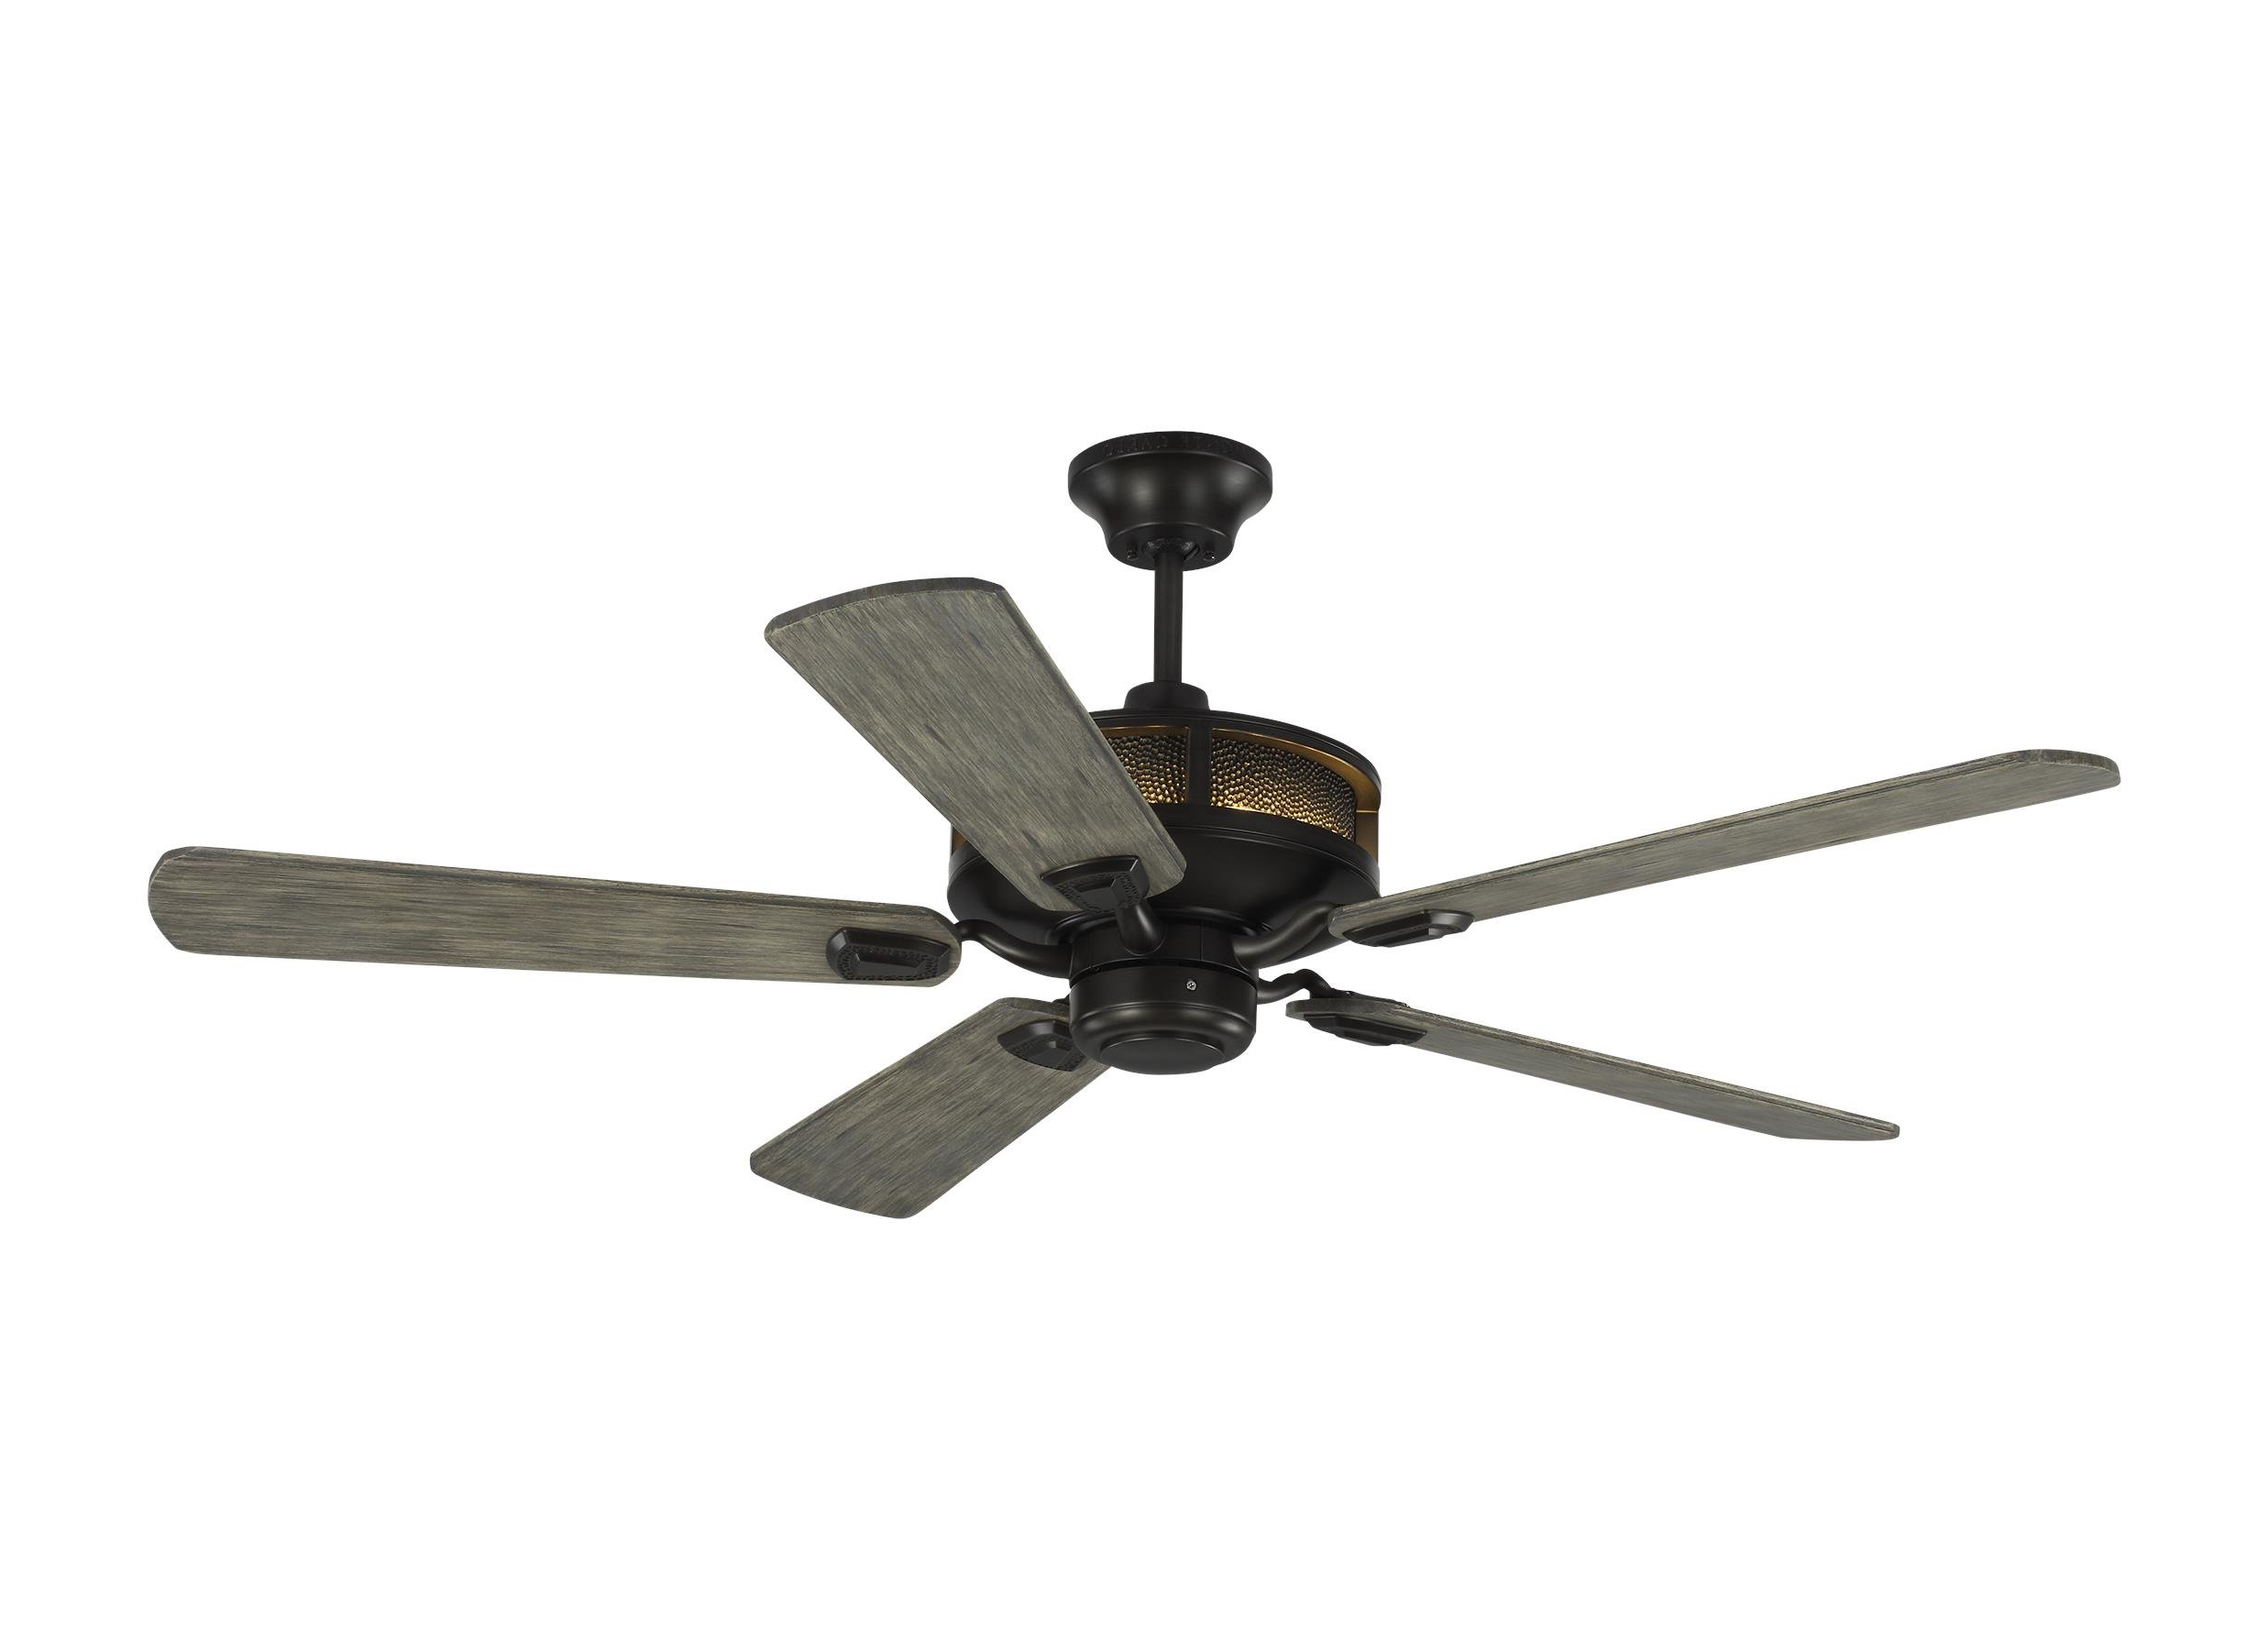 """Favorite Bennett 5 Blade Led Ceiling Fans With Remote With 56"""" Artizan 5 Blade Led Ceiling Fan With Remote (View 7 of 20)"""